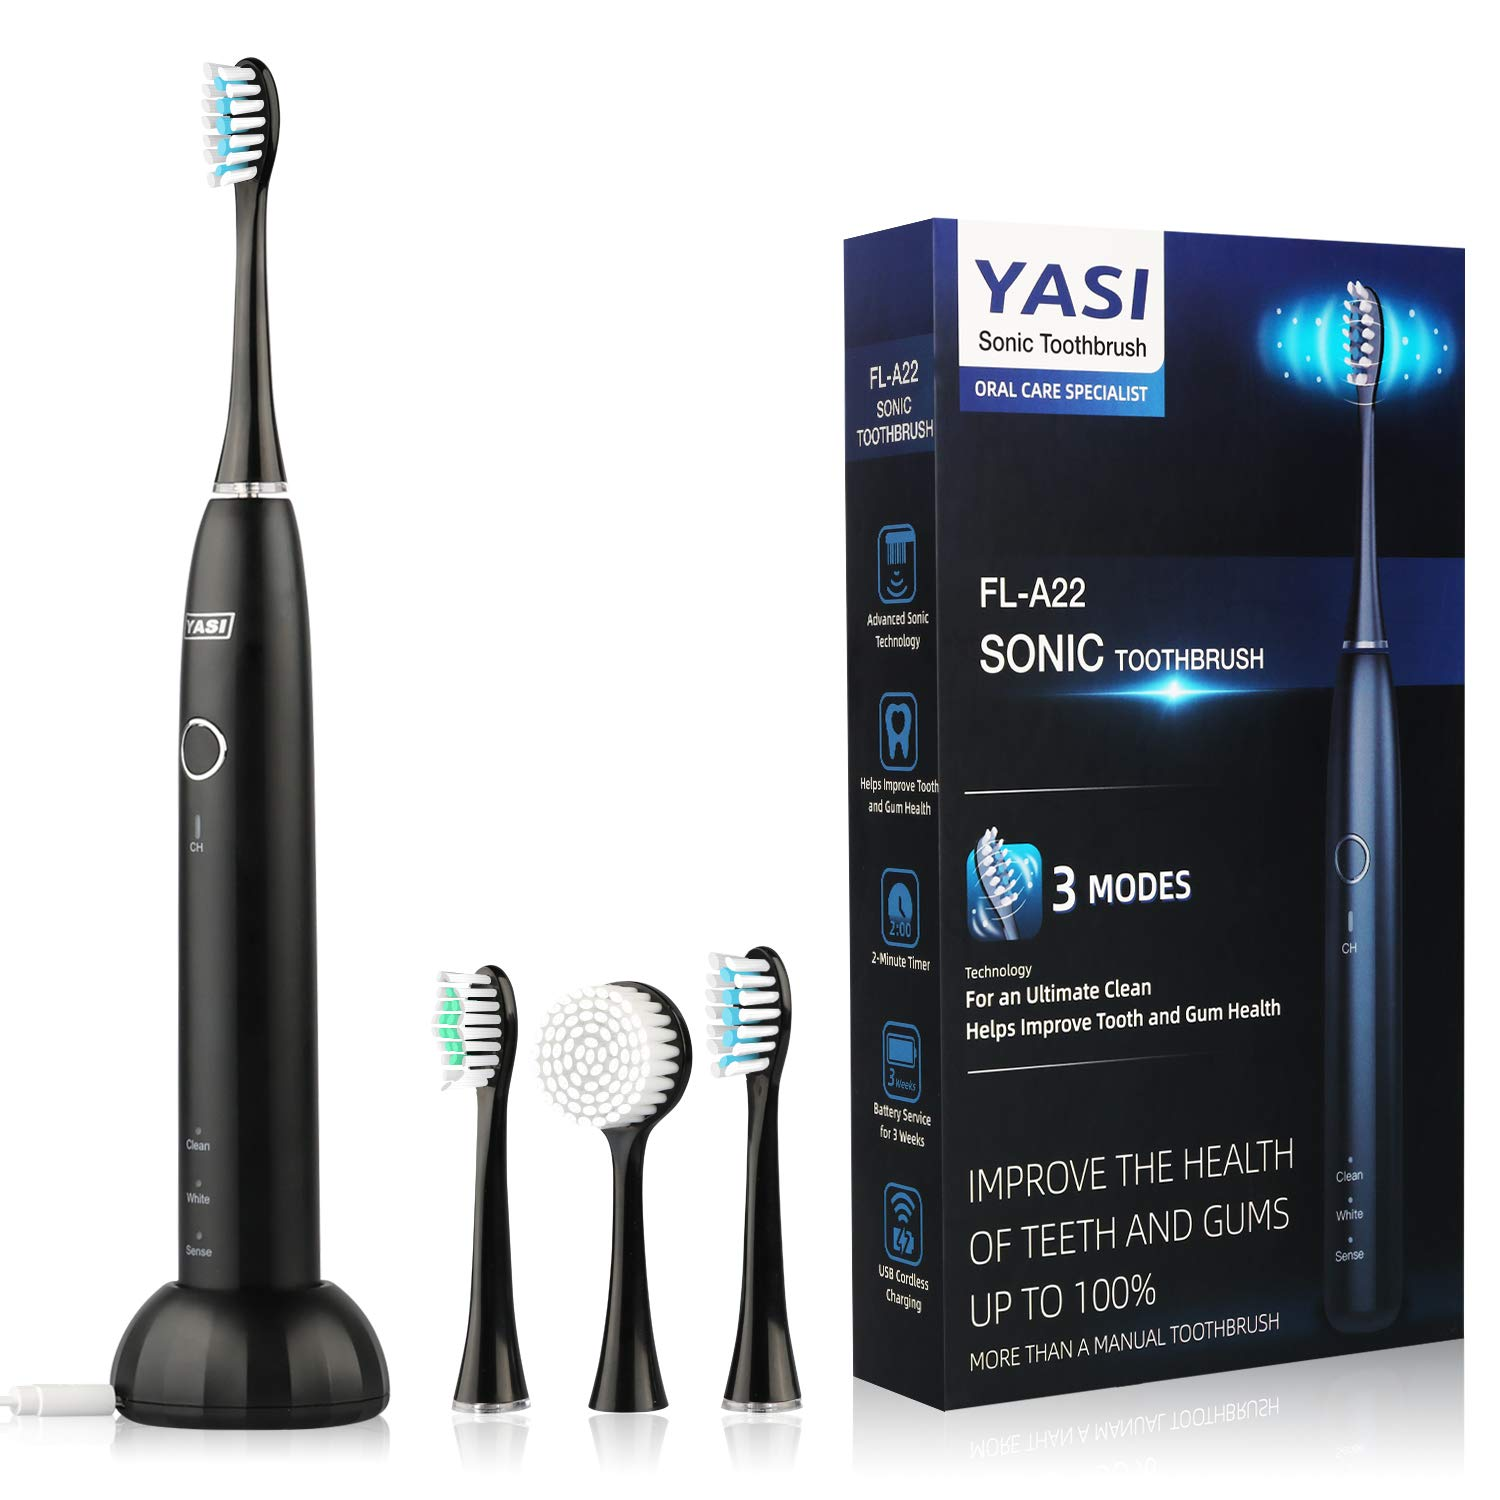 Sonic Electric Toothbrush,50,000 VPM Whitening Toothbrush Rechargeable With 2 Brush Heads,1 acial Cleansing Brush,Wireless Charging,Adult Waterproof Ultrasonic Toothbrush with 3 Modes&Smart Timer by YASI